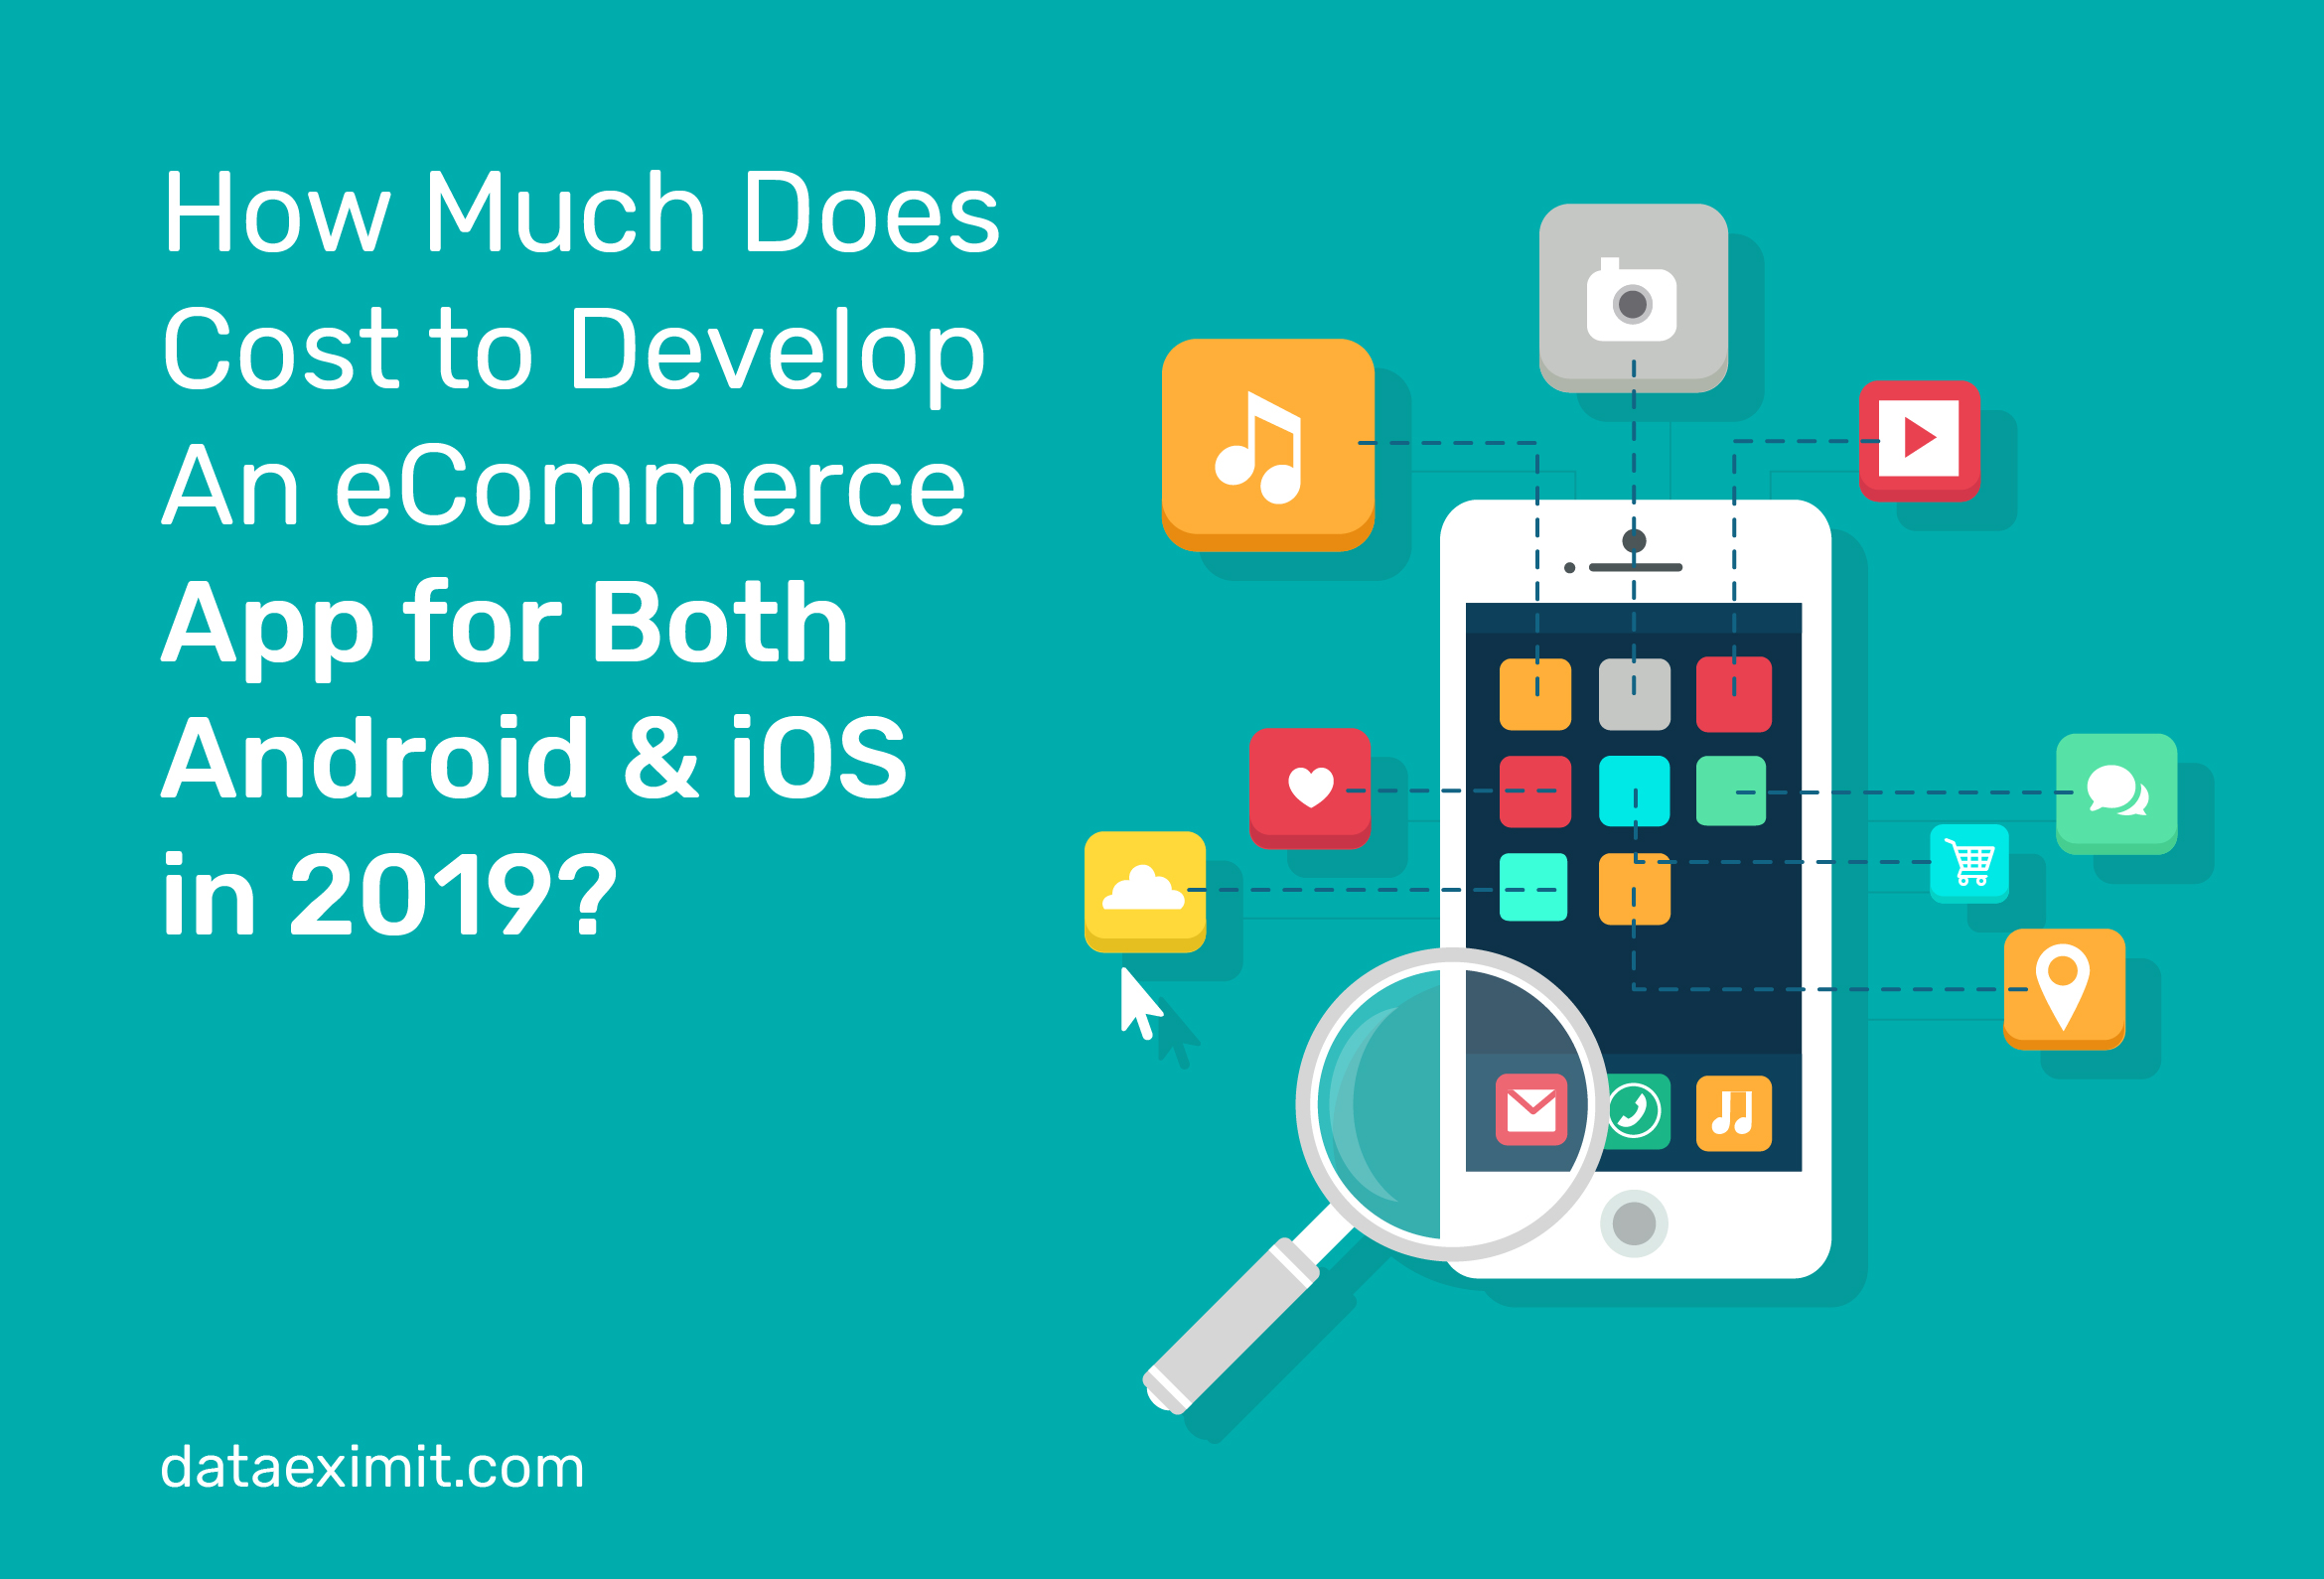 How Much Does Cost To Develop An E-commerce App For Both Android & iOS In 2019?